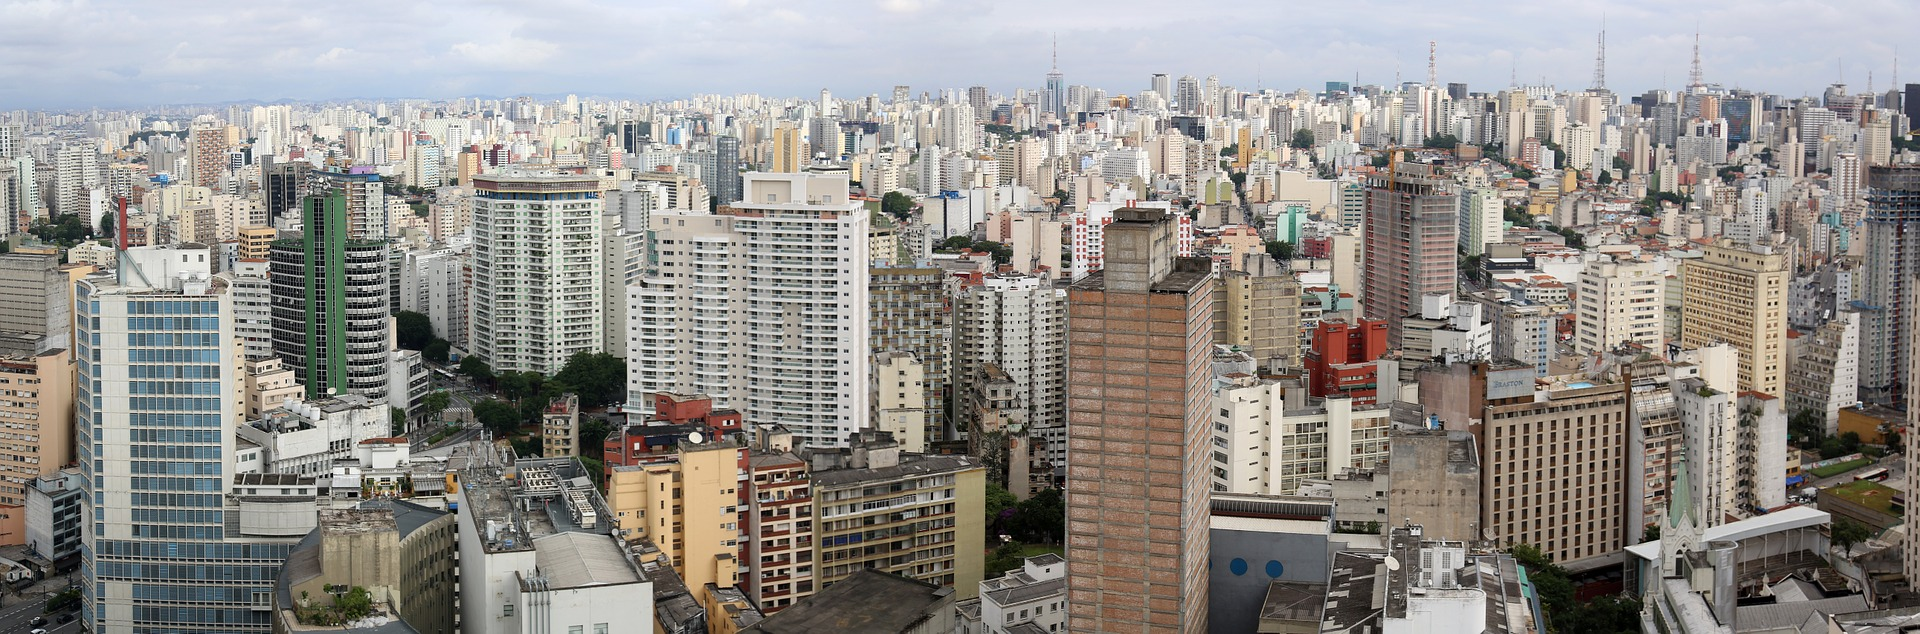 Brazilian urban farming project could reduce carbon emissions by 20 percent